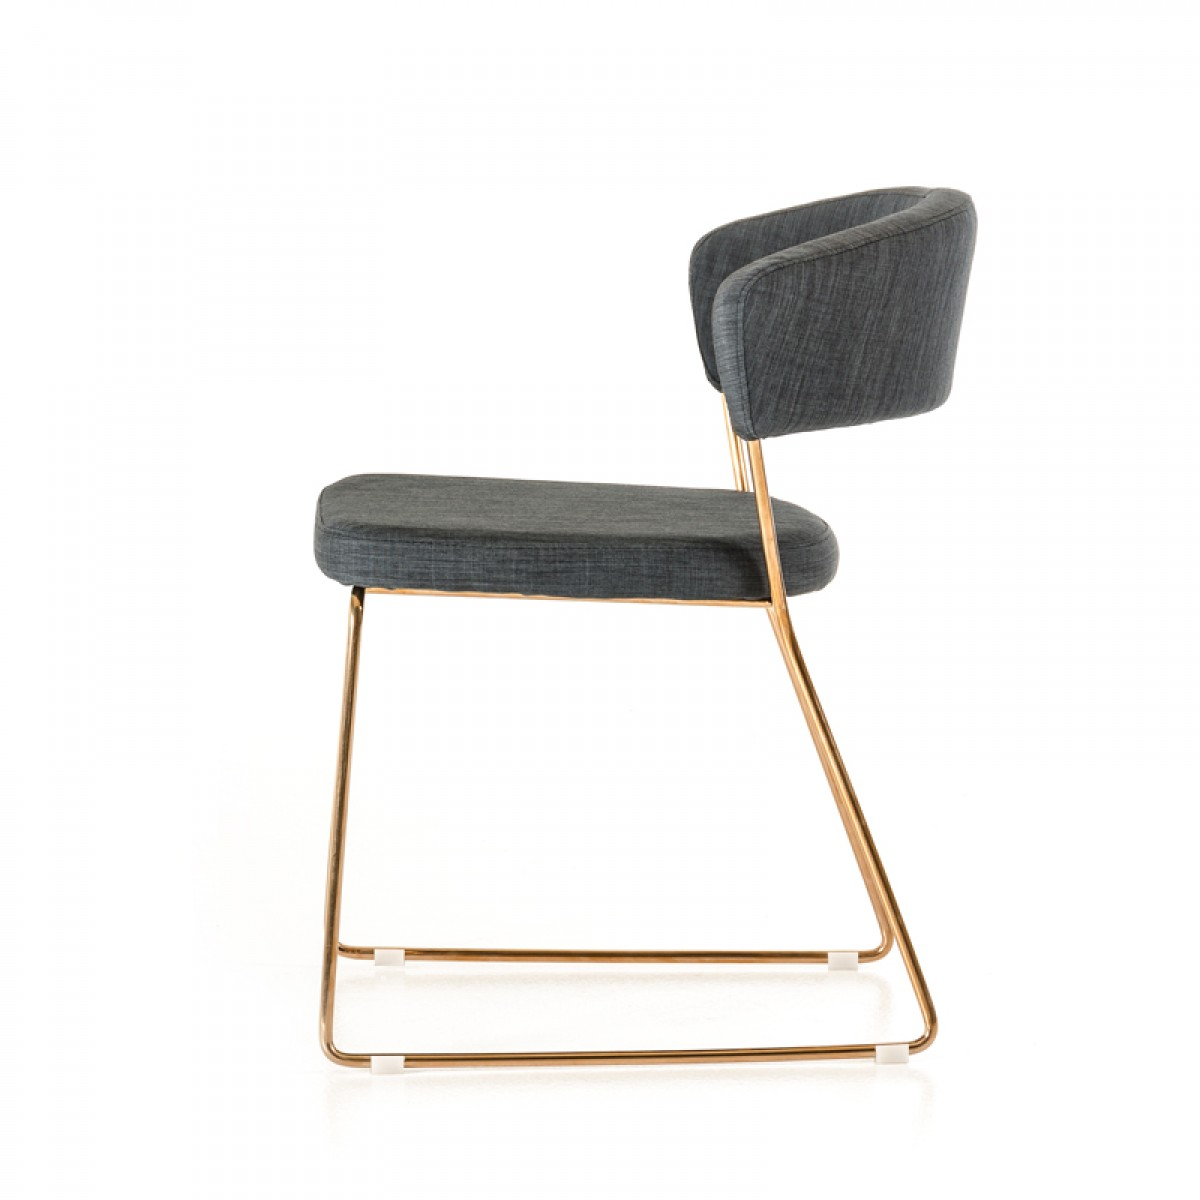 Check out the low priced grey modern dining chair we've got available with rose gold finish frame.